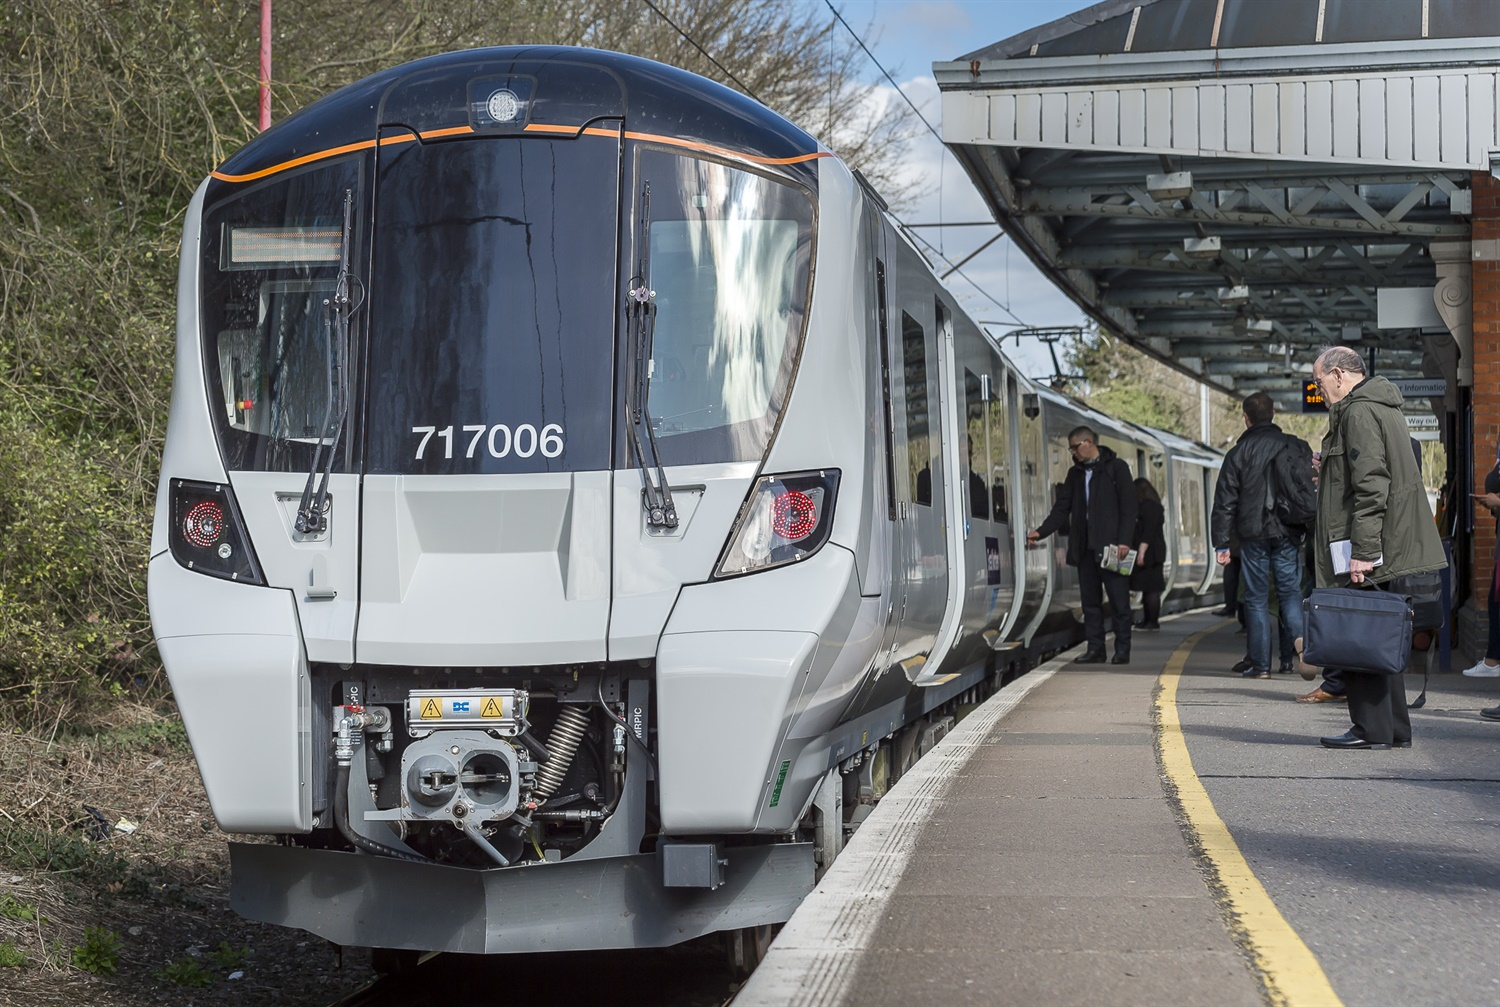 GTR replaces UK's oldest electric fleet with new £240m Class 717 trains